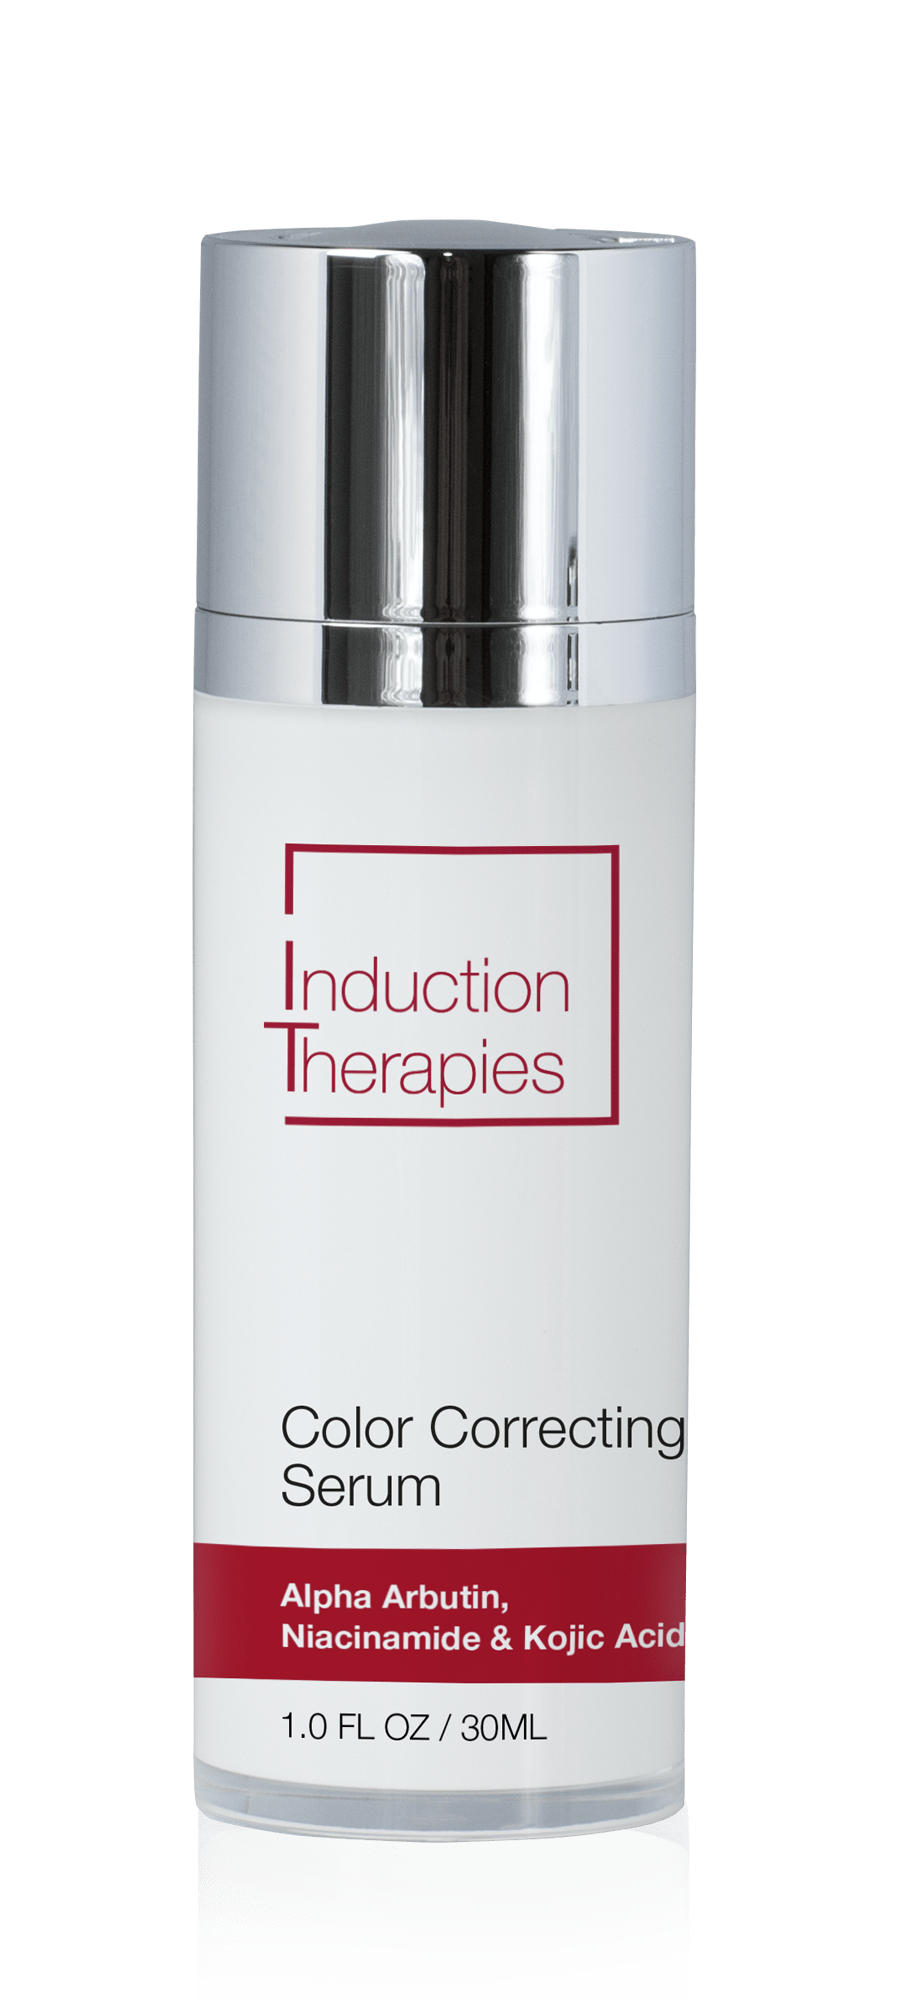 Color Correcting Serum Image